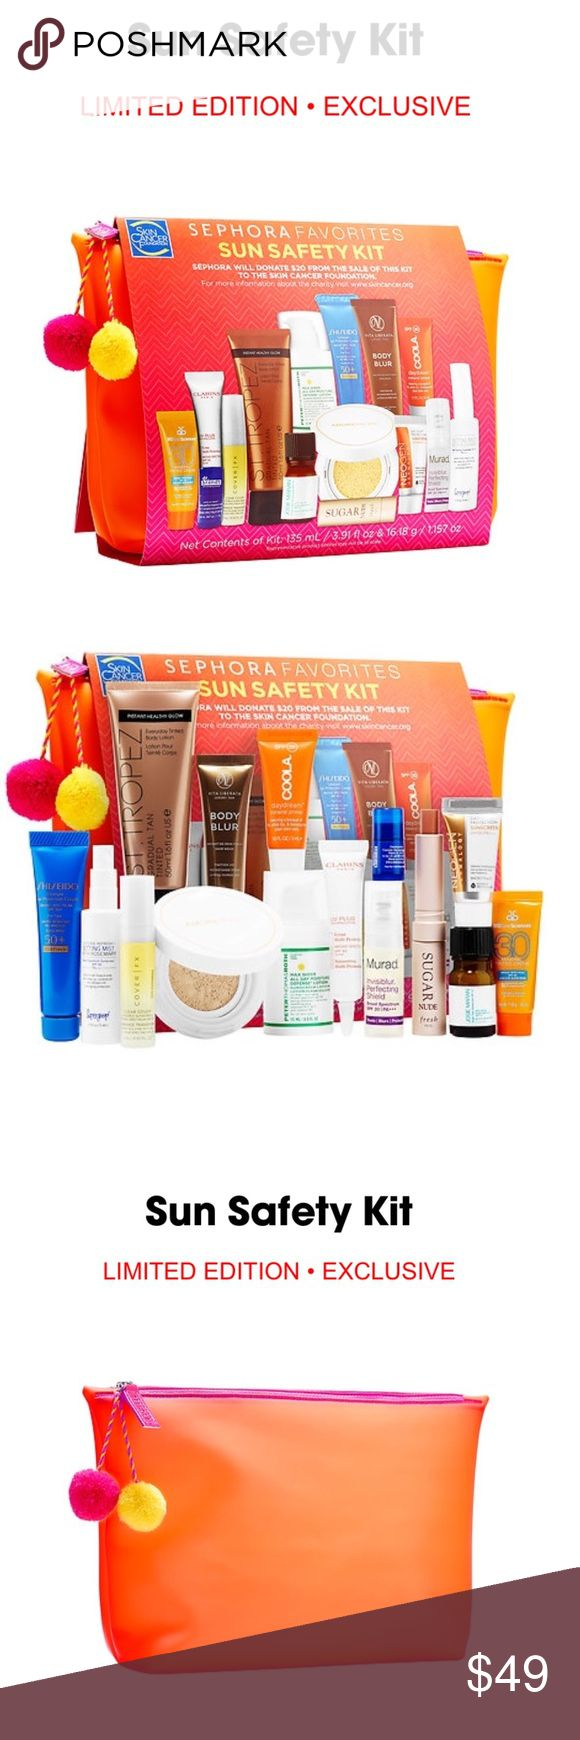 ☀️ Sephora 2017 Sun Safety Kit ☀️ 🎀 15-piece set of popular and high-end products to help you get - and keep - a healthy glow without sun damage! 🎀 $132.00 Value. ☀️ Limited Edition! Sephora Exclusive! ☀️ Various Makeup